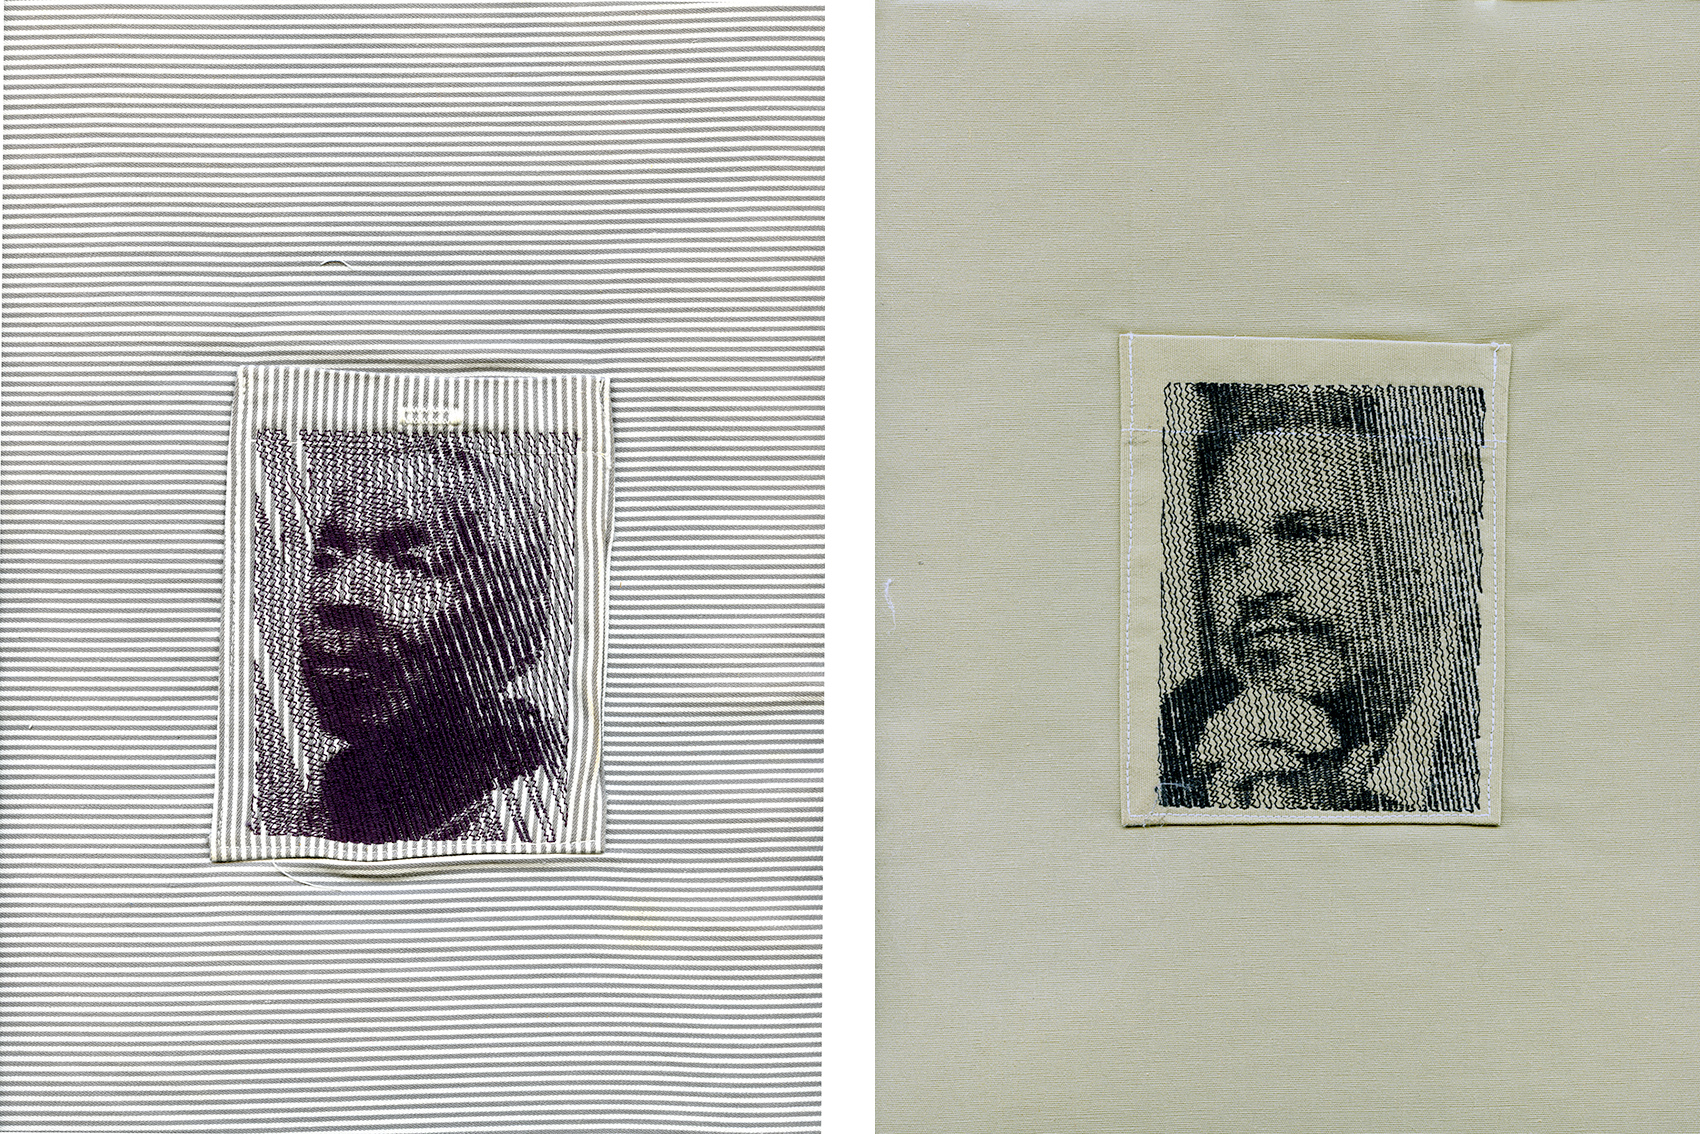 Machine-embroidered portraits of Glenn Ford and Anthony Hinton